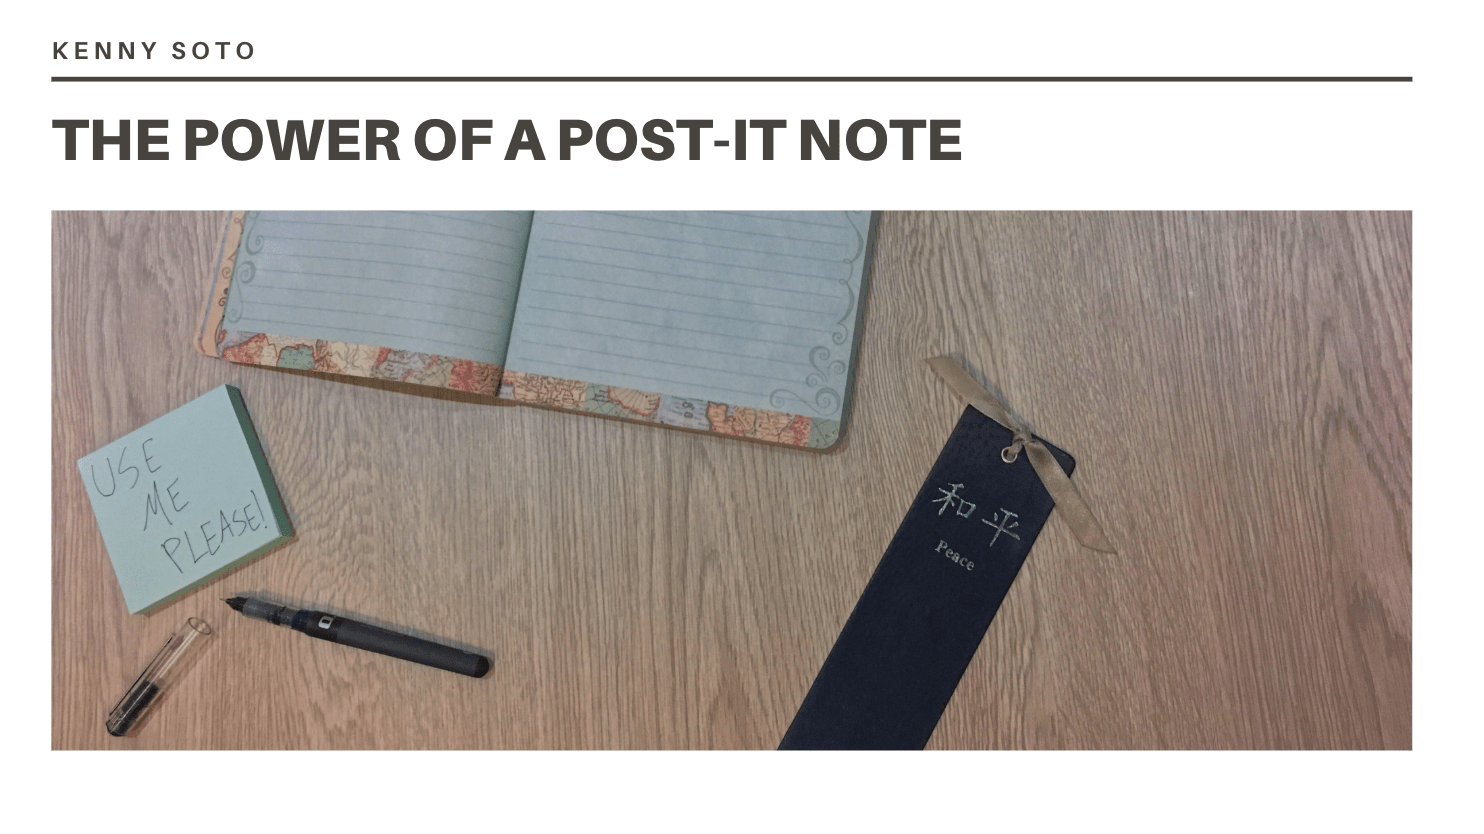 The Power of a Post-it Note